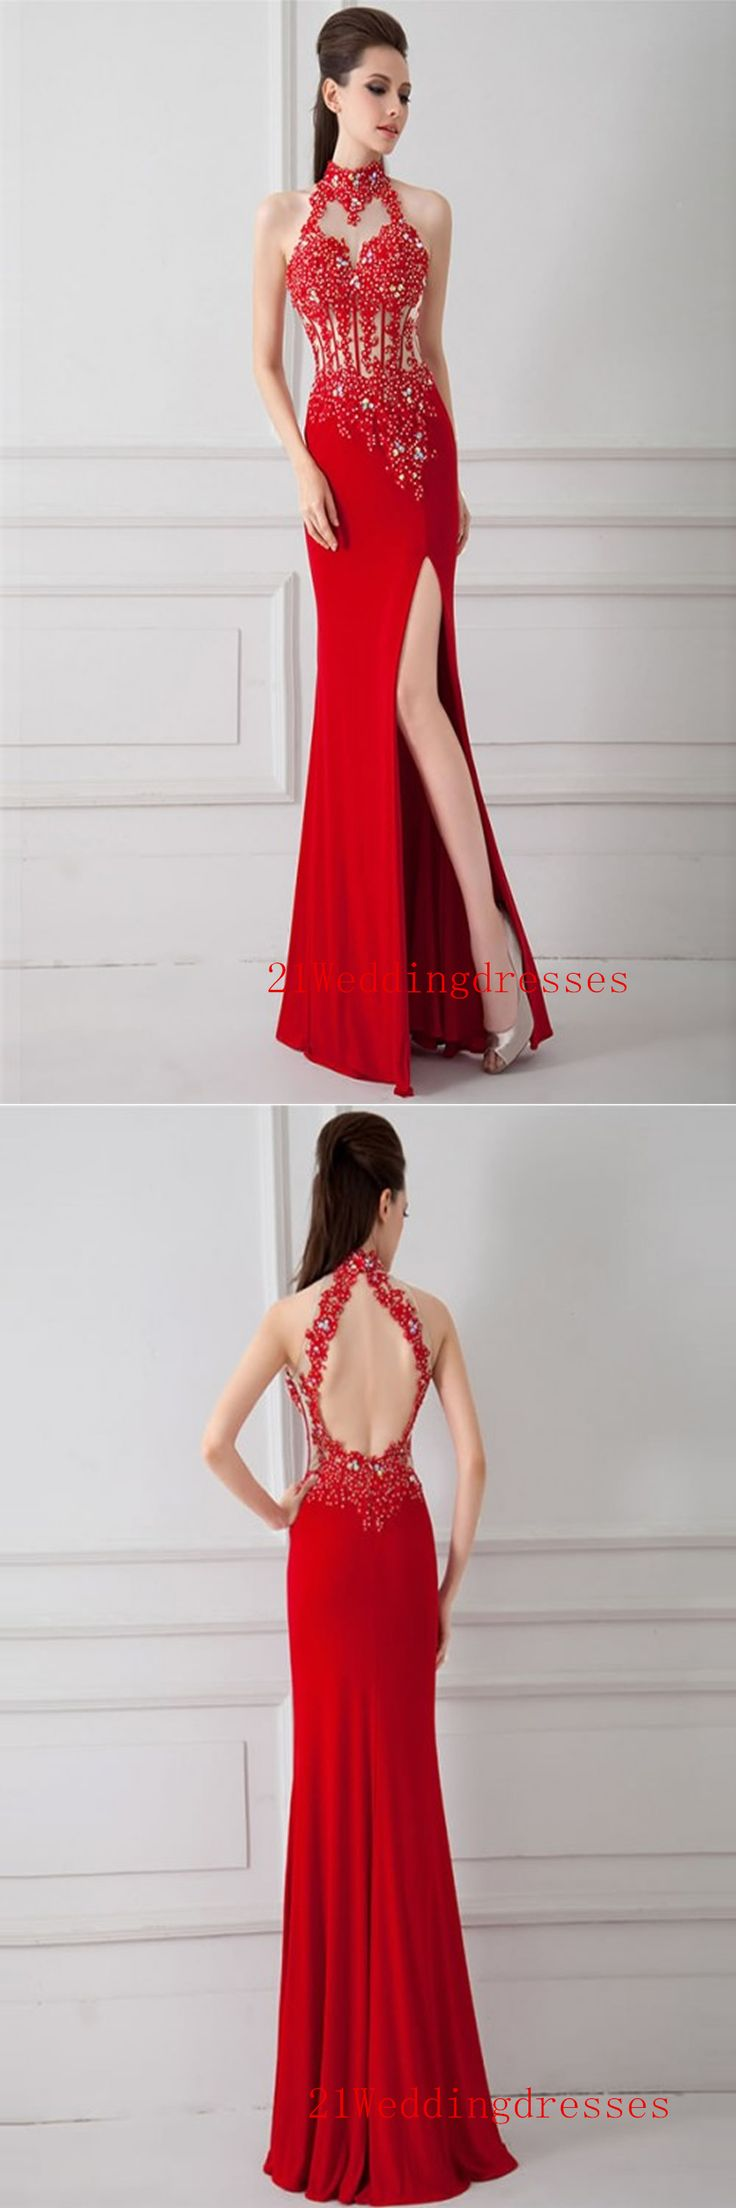 Real Sexy Red Prom Dresses,Beaded Prom Dress,Long Lace Prom Dresses,Front Split Backless Prom Dresses,Sheath Evening Dresses,Party Dresses http://21weddingdresses.storenvy.com/products/15546672-real-sexy-red-prom-dresses-beaded-prom-dress-long-lace-prom-dresses-front-sp #promdresses #promdress #redpromdresses #eveningdresses #eveninggowns #partydresses #partygowns #longpromdresses #cheappromdresses #lacepromdresses #beadedpromdresses #sexypromdresses #backlesspromdresses #custompromdresses